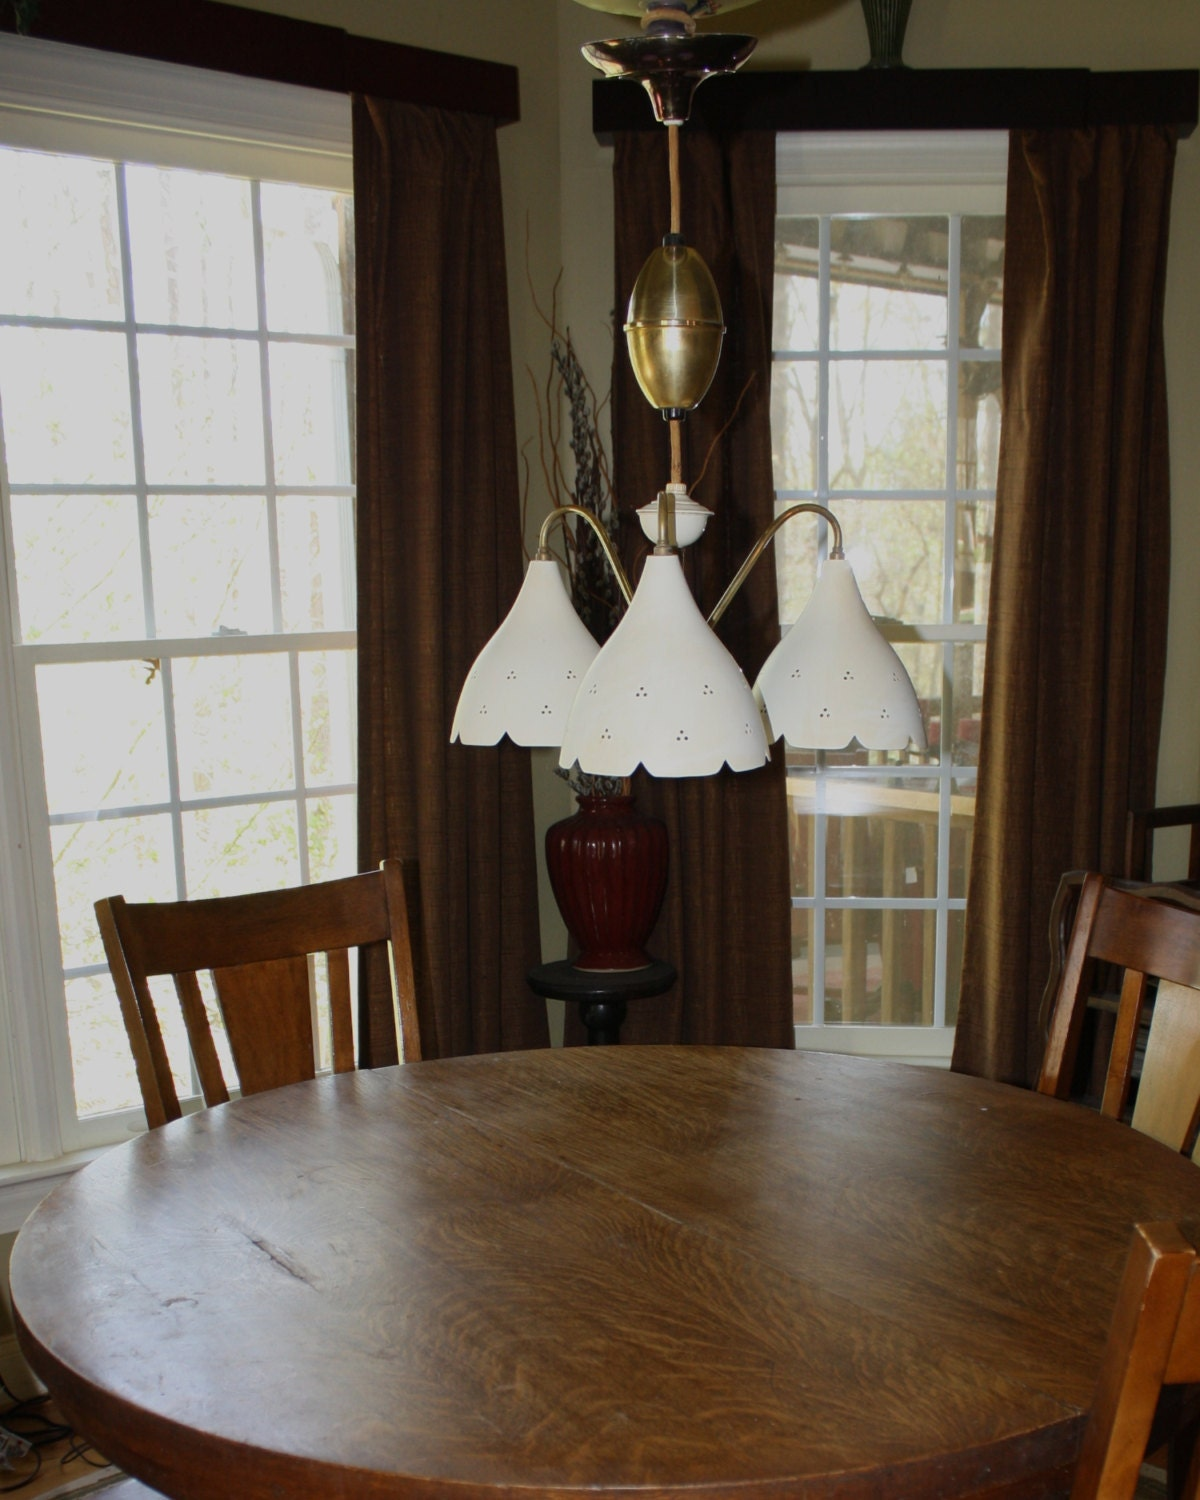 Dining Table Lights: Dining Table Lighting Fixtures